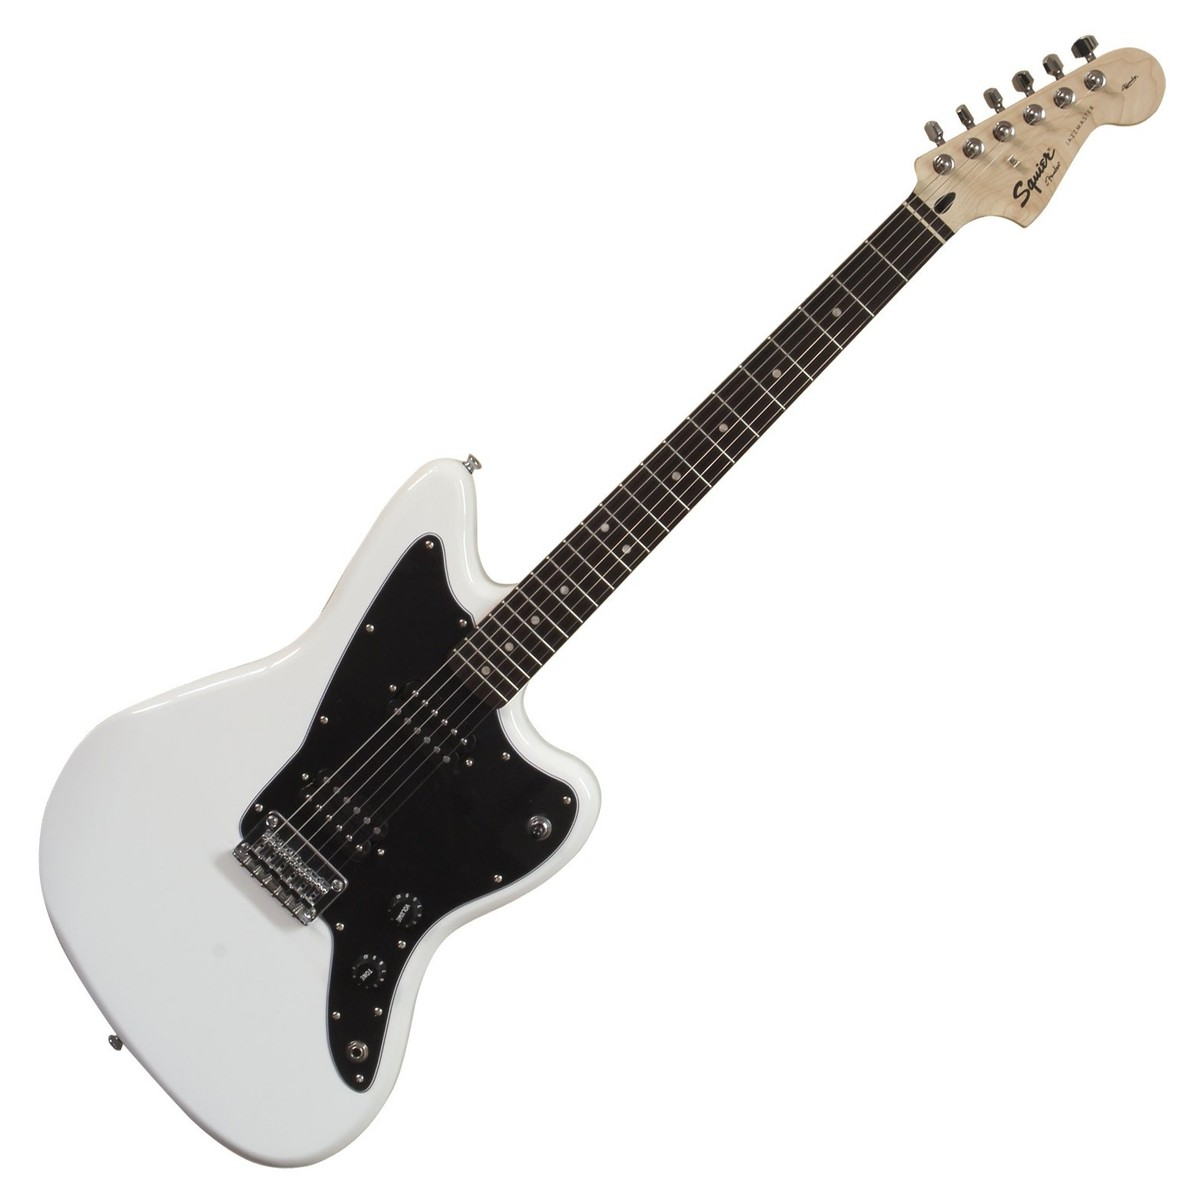 squier by fender affinity jazzmaster hh electric guitar arctic white at gear4music. Black Bedroom Furniture Sets. Home Design Ideas